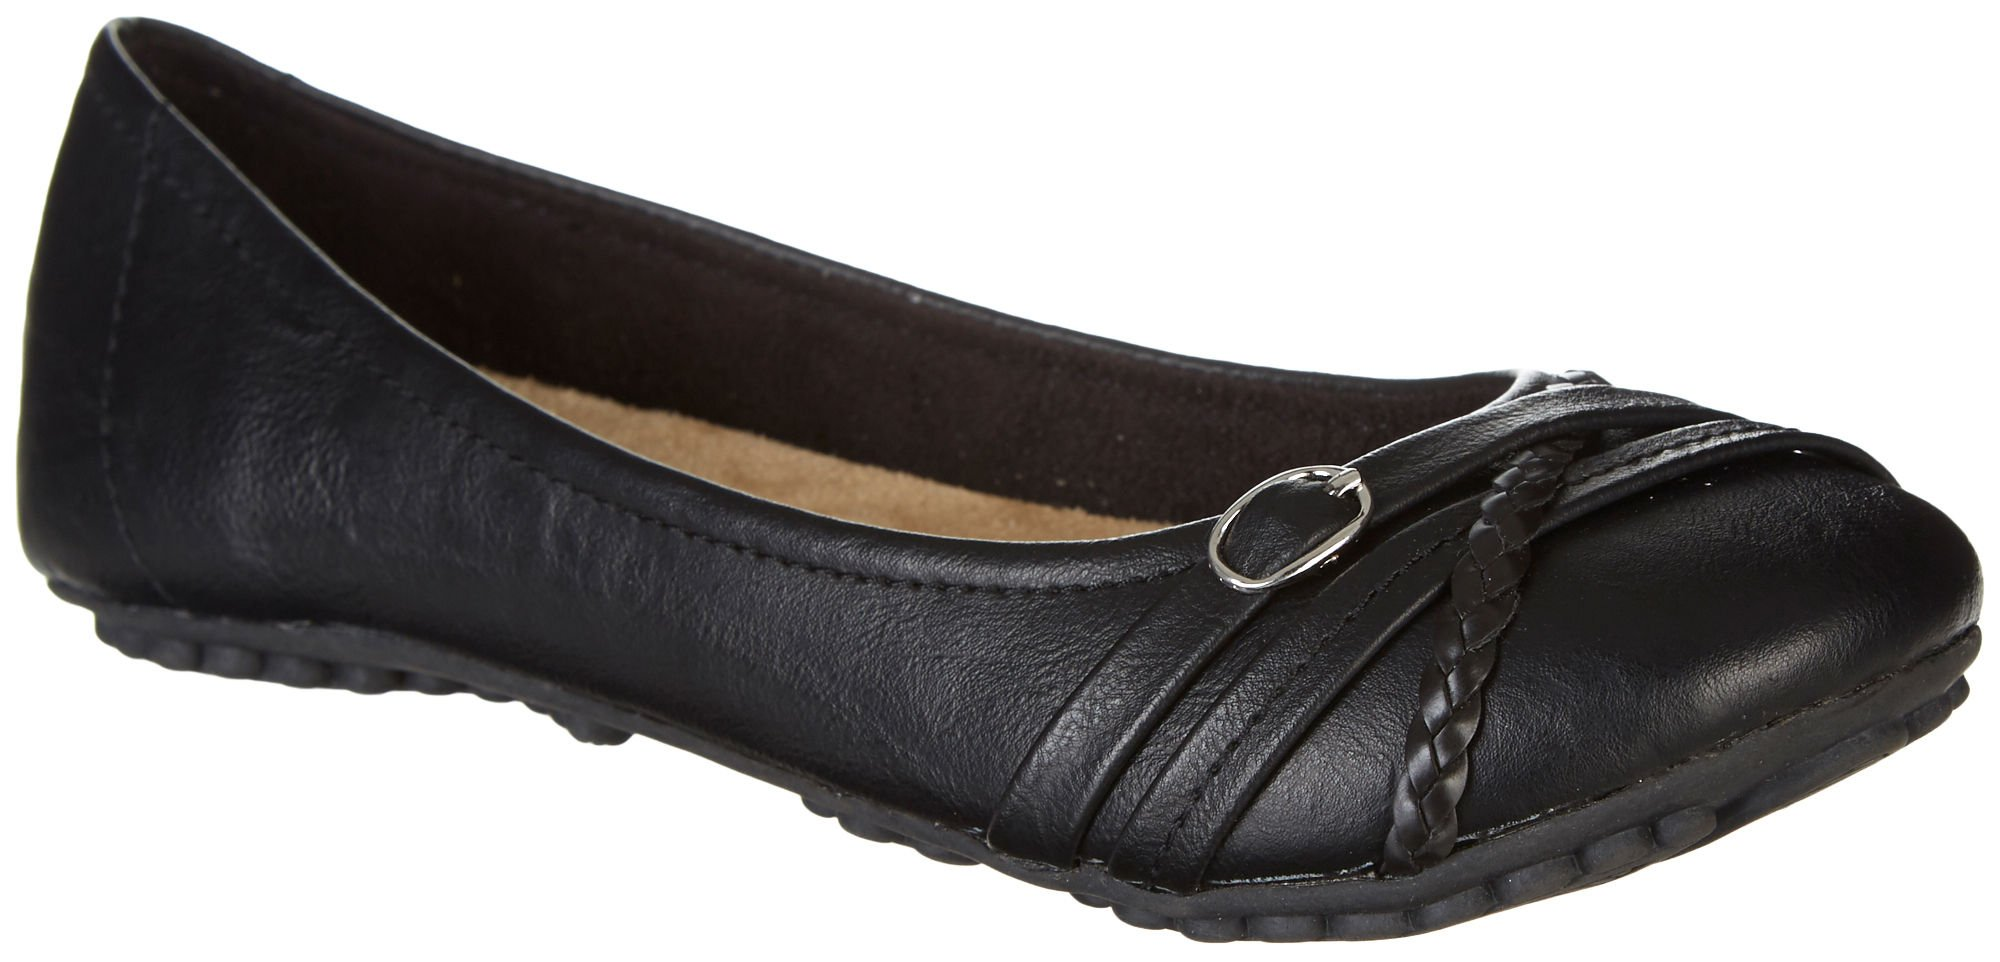 Jellypop Hector Womens Slip On Flats Black Distressed 10